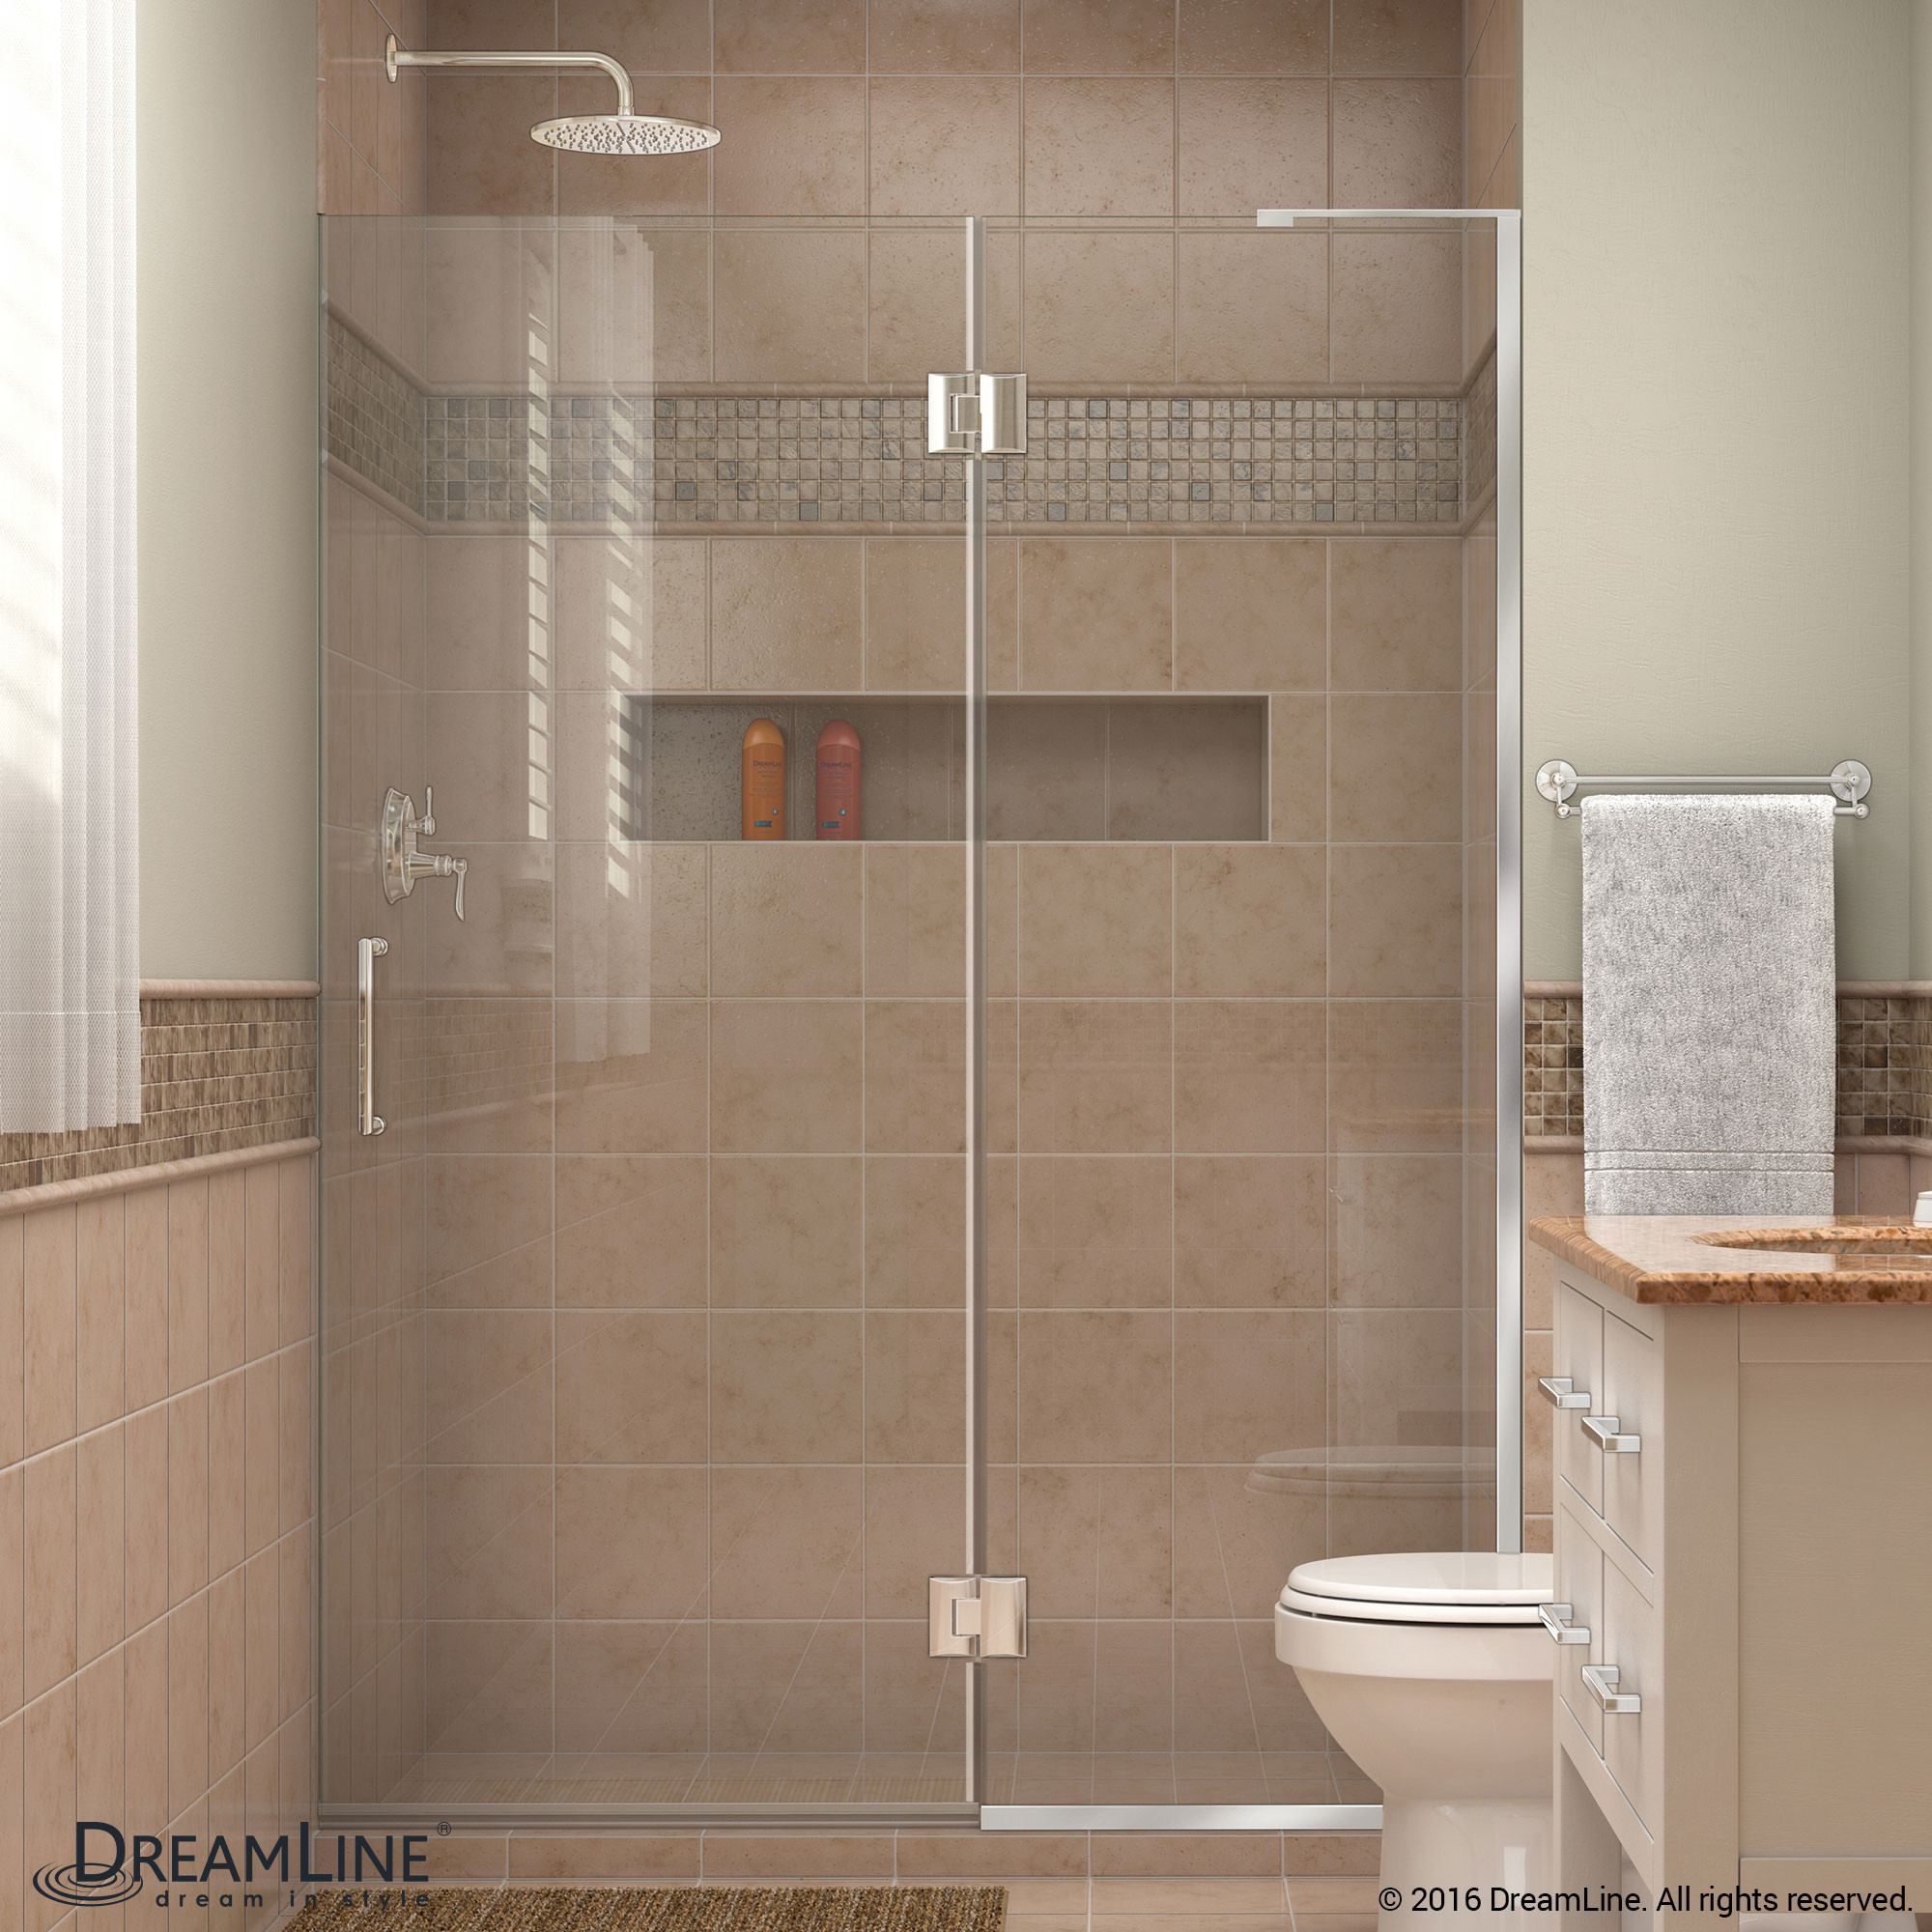 DreamLine D32772R-01 Chrome Unidoor-X Hinged Shower Door With Right-wall Bracket